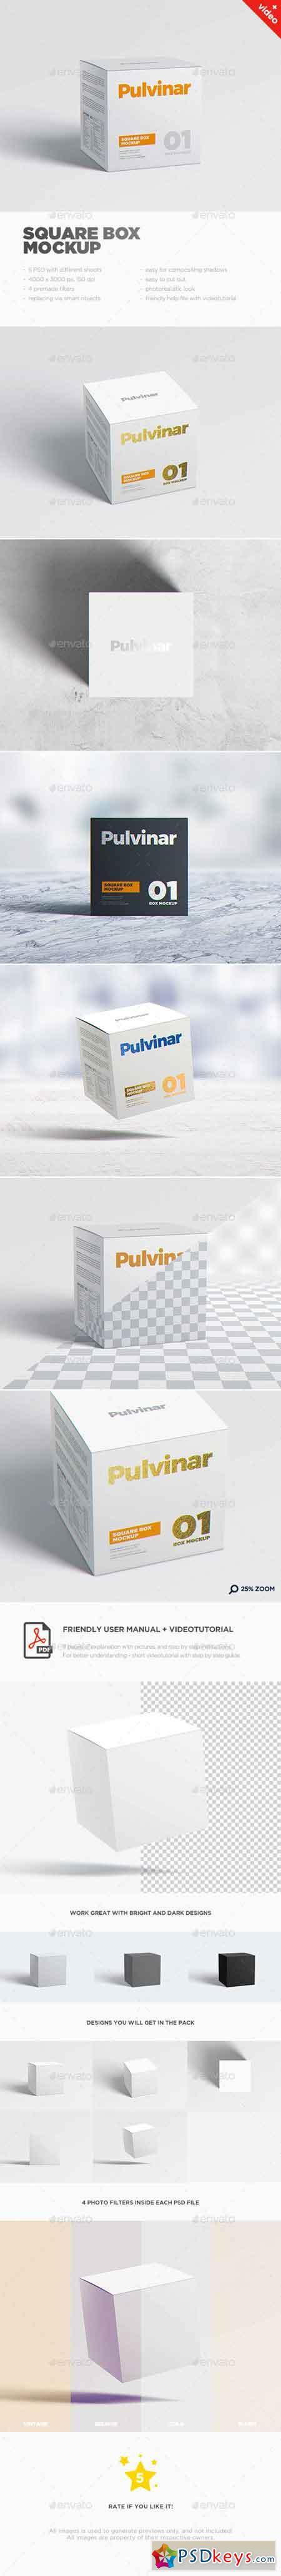 Box Packaging MockUp - Square 17626055 » Free Download Photoshop